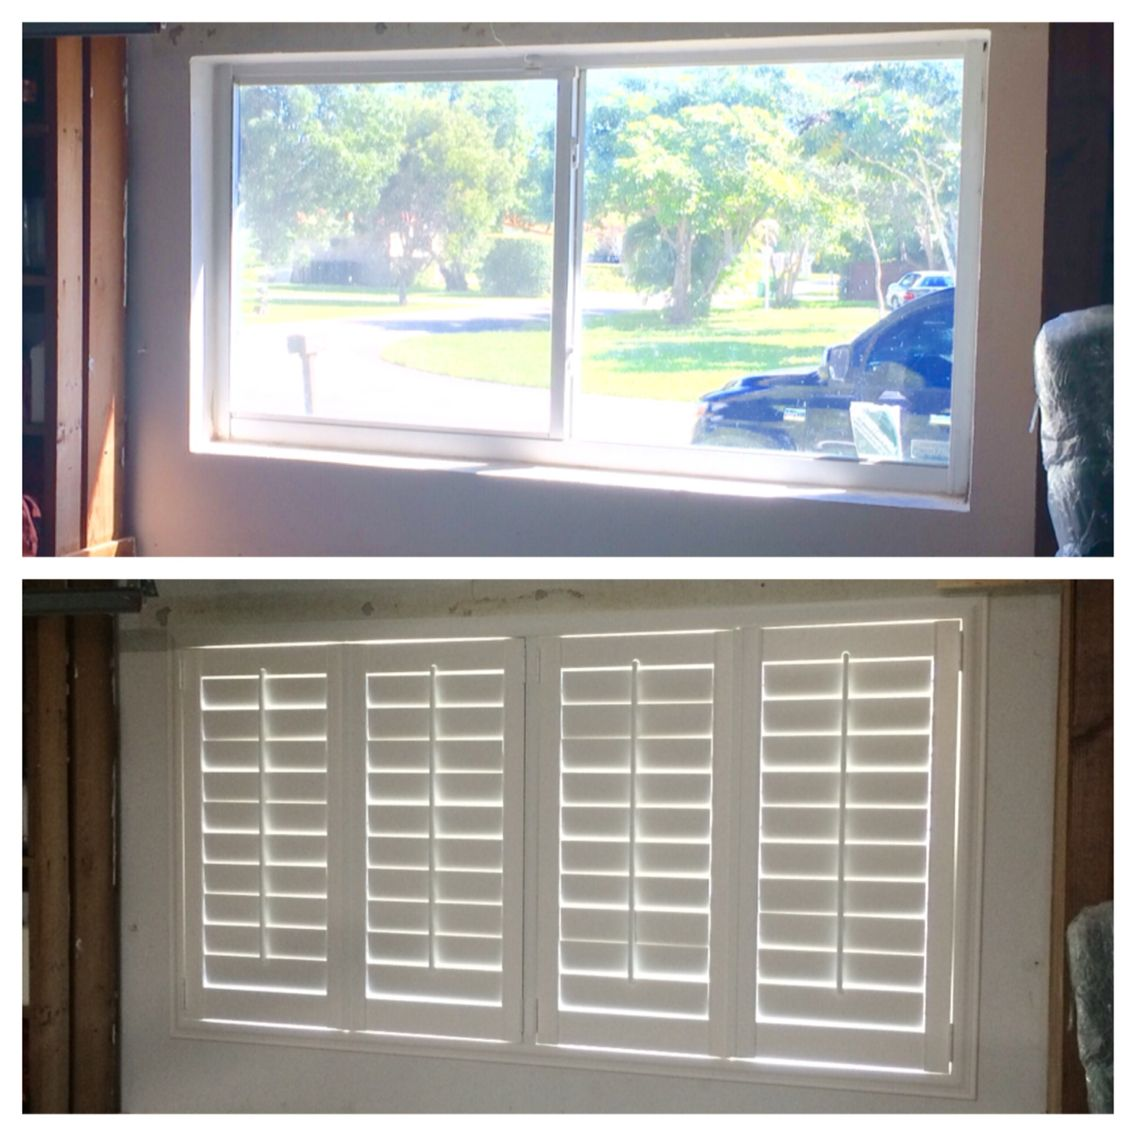 Before And After Garage Window In Plantation Shutters